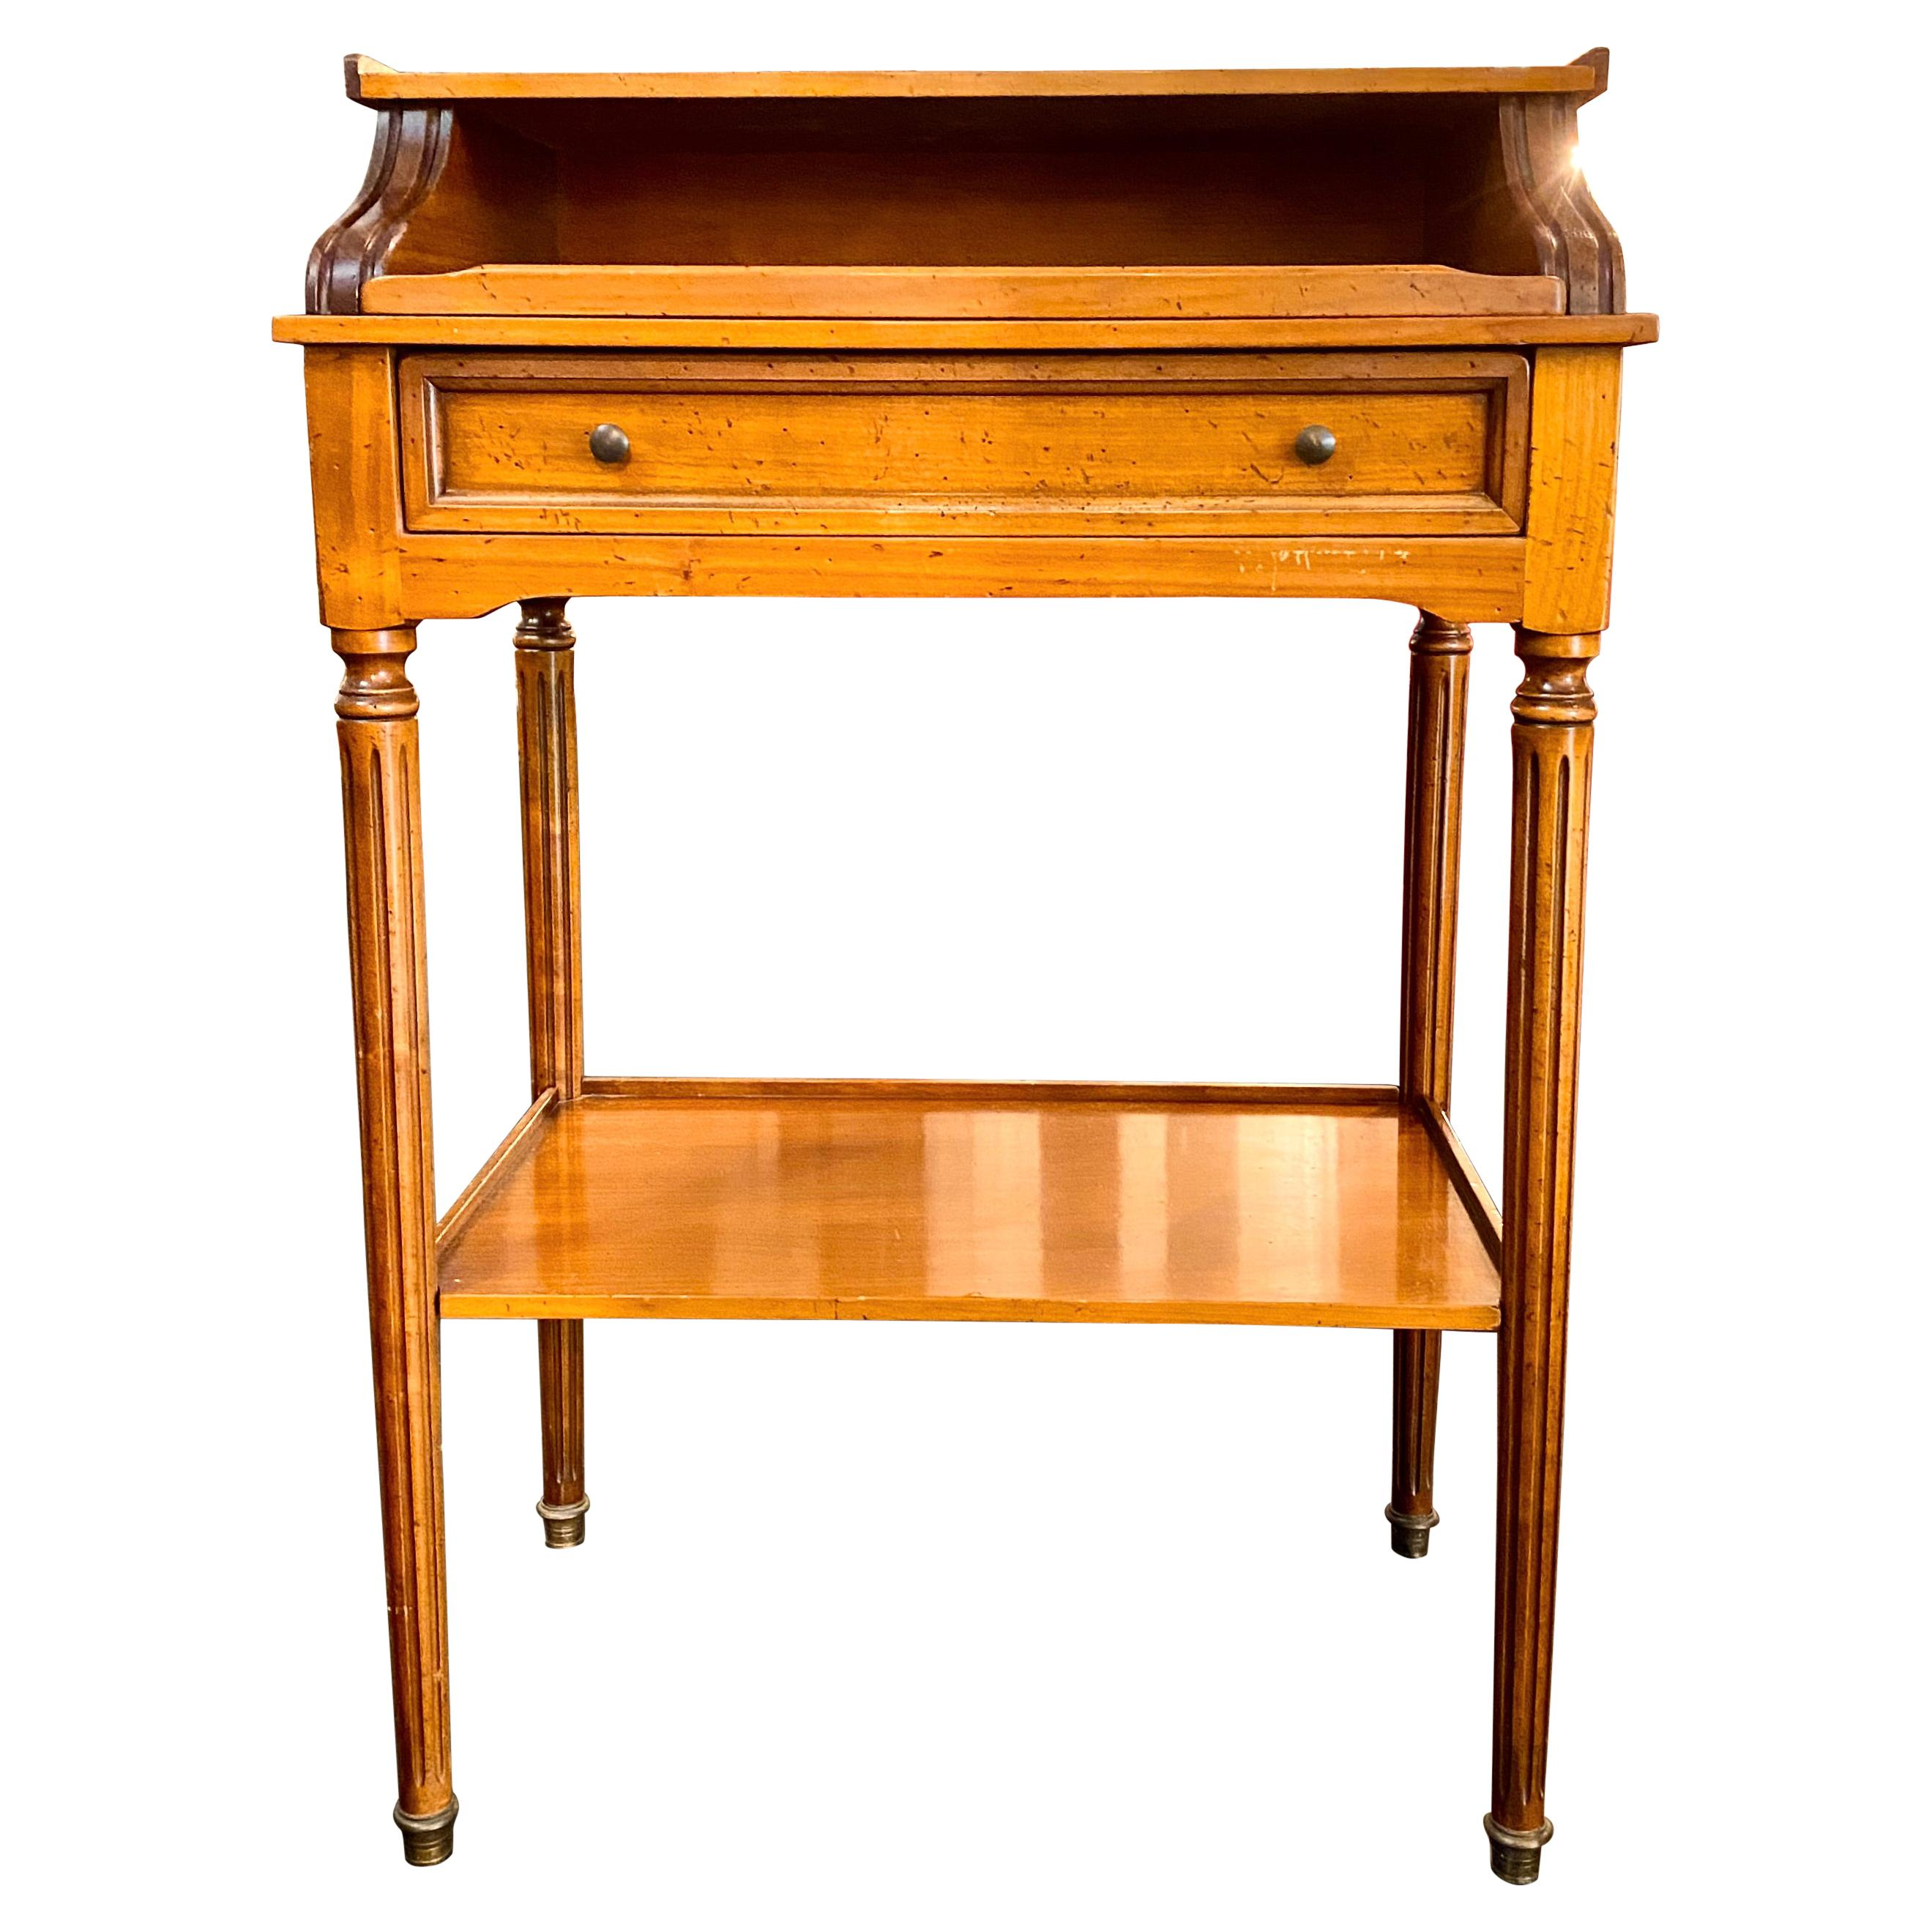 French Writing Table on Casters, Pull-Out Gilt-Tooled Leather Top